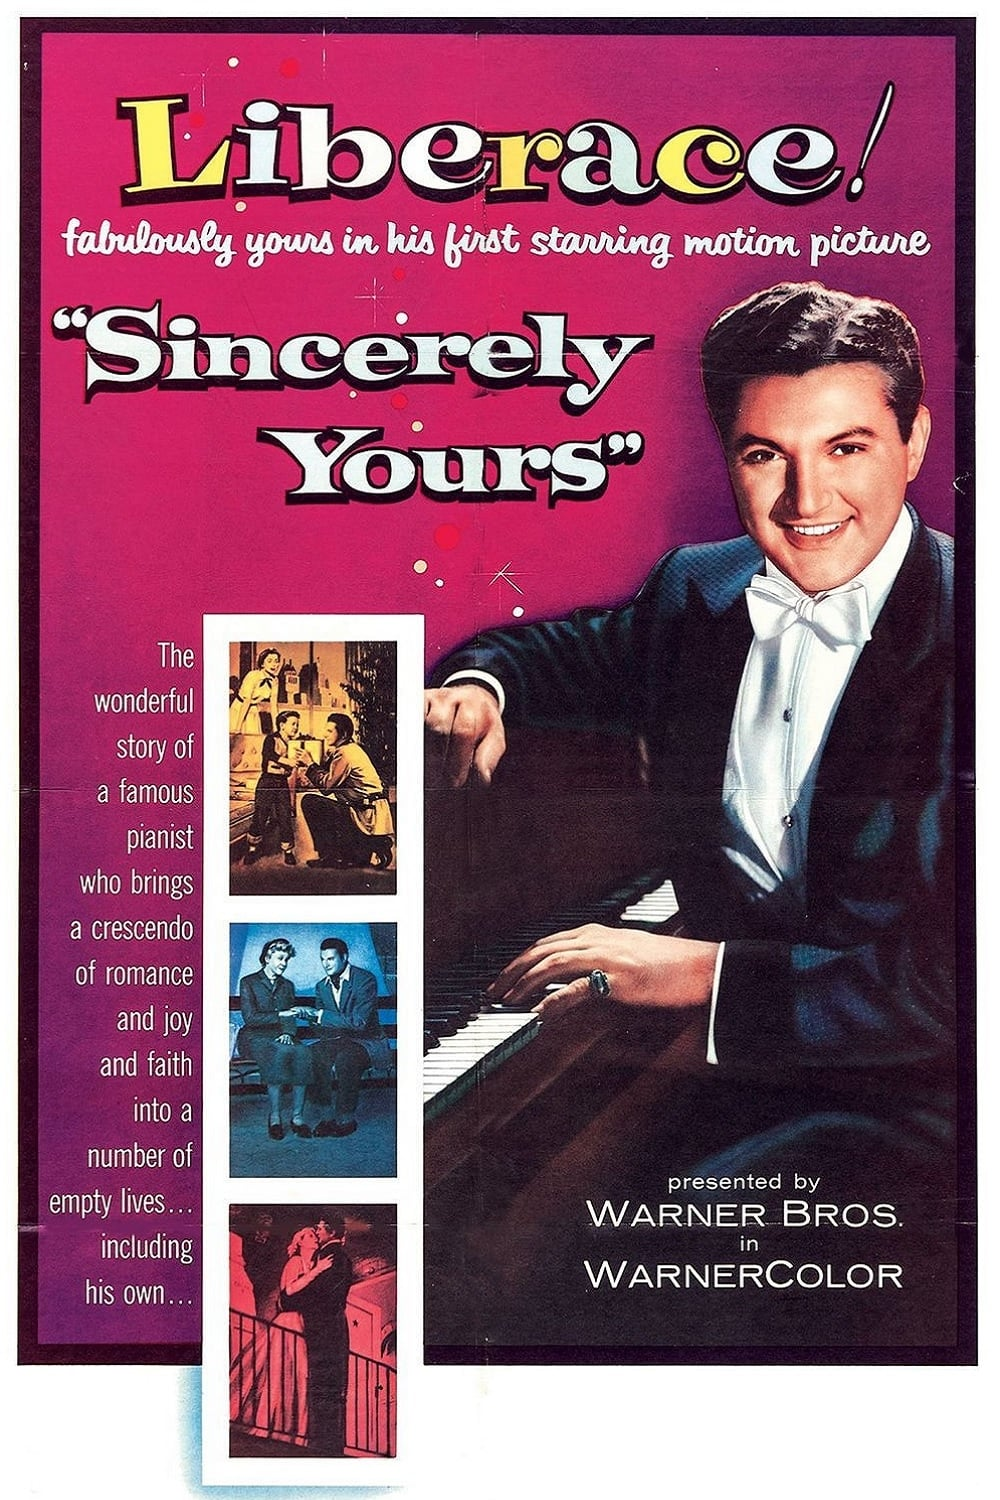 Sincerely Yours poster